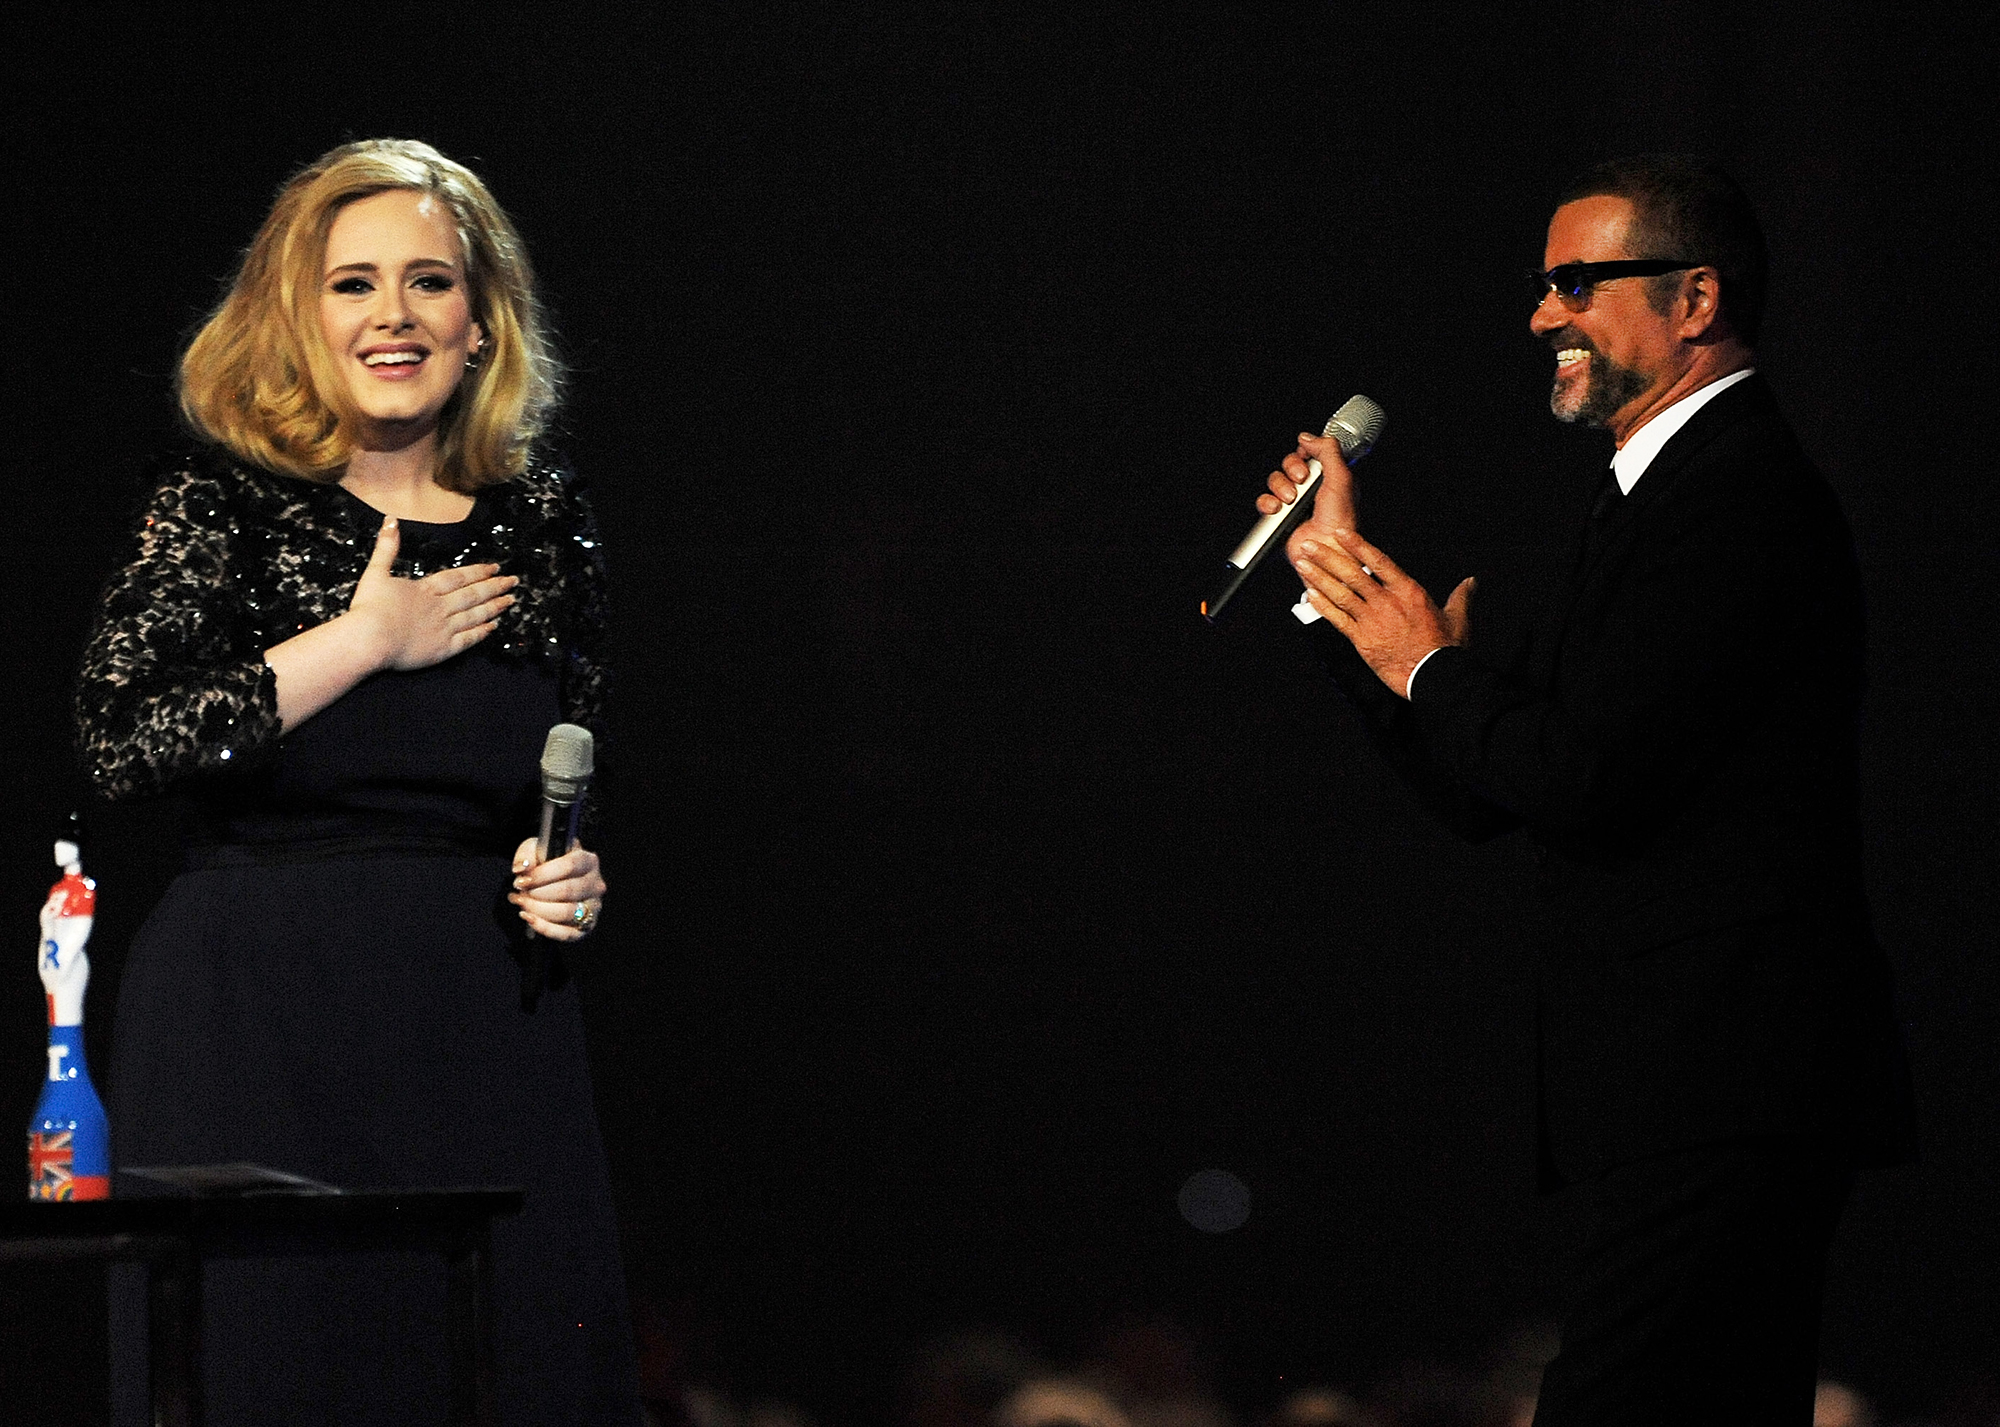 Adele accepts the Best Album award from George Michael during the BRIT Awards at the O2 Arena in London, on Feb. 21, 2012.